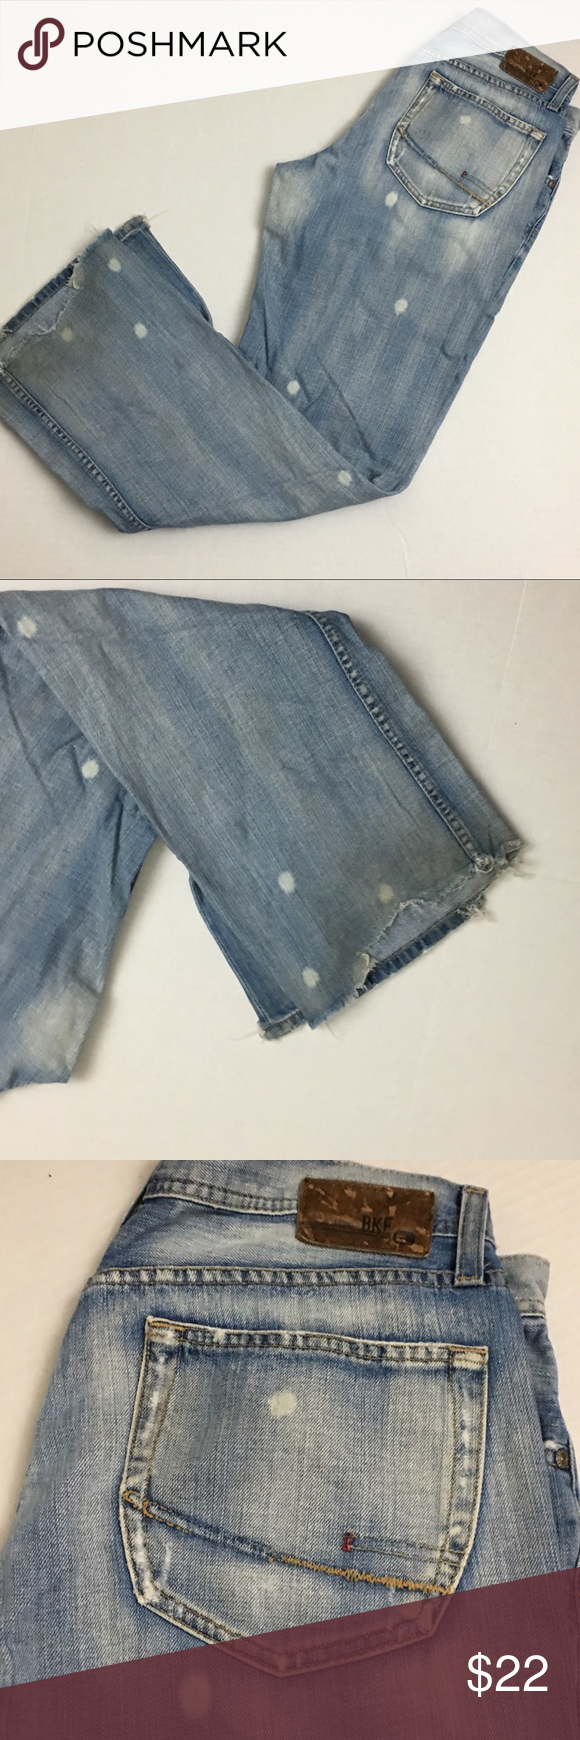 Men's BKE Distressed Paint splattered Jeans Significant wear to the back bottom leg hem. See pictures. No marks or stains. BKE Jeans